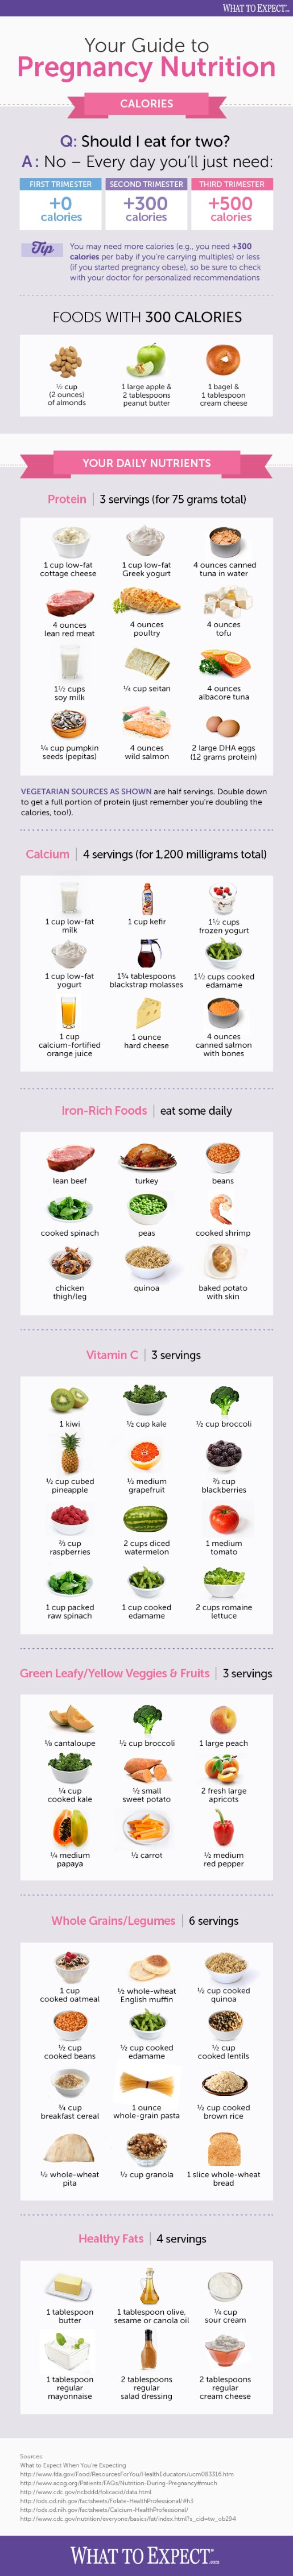 Healthy Food Choices for Pregnant Women